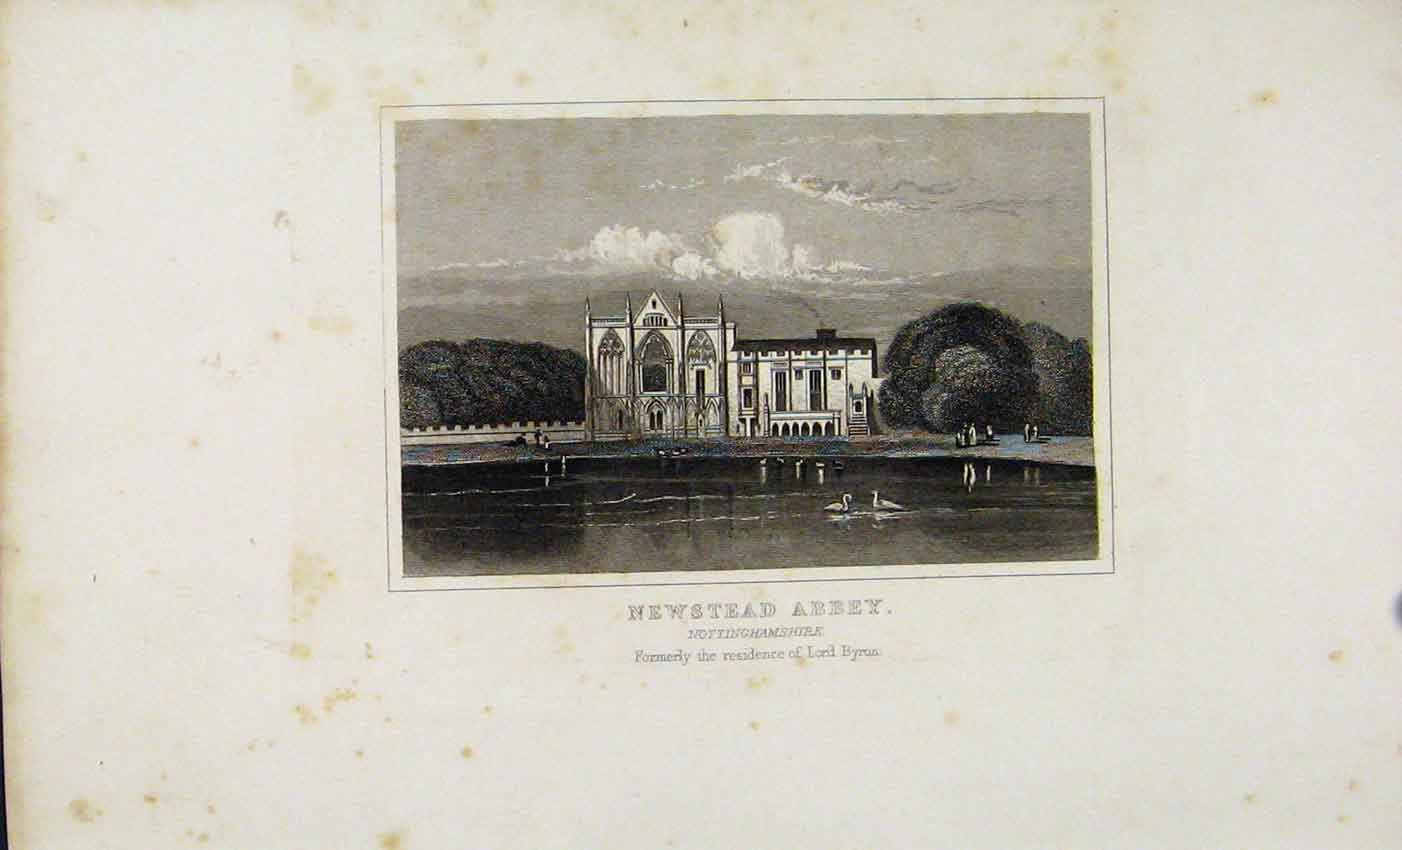 Print C1845 Dugal Newstead Abbey Nottinghamshire England 747541 Old Original